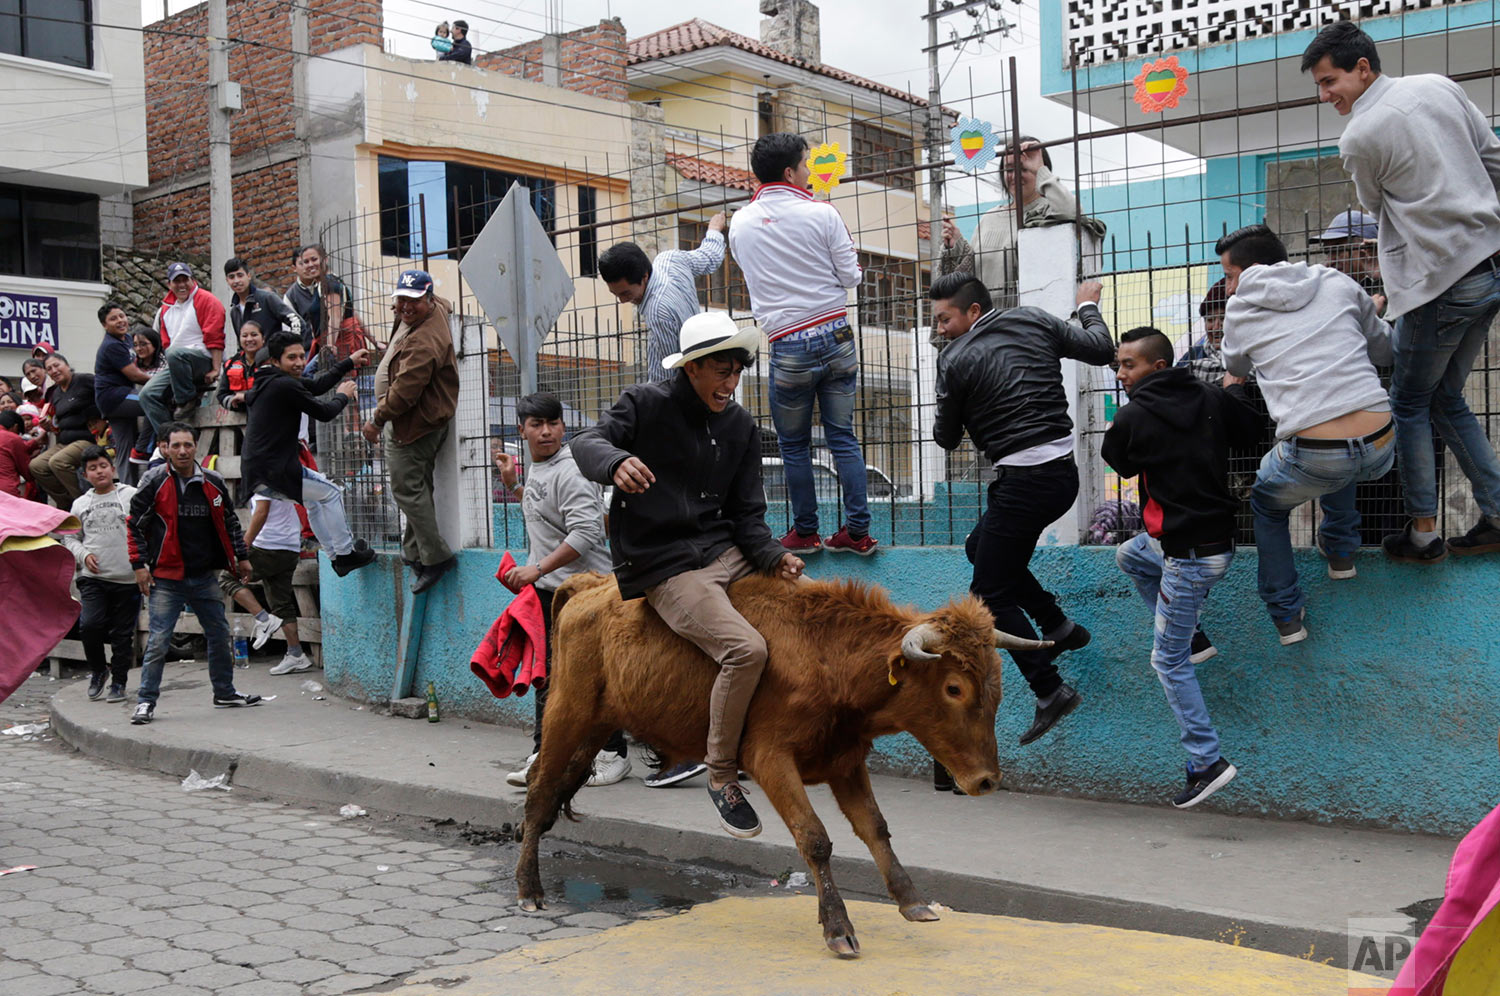 """A man rides a bull during a running of the bulls event coined """"Pamplonada Pillarense"""" in Pillaro, Ecuador, Saturday, Aug. 5, 2017. The small Andean city sets loose about 40 bulls during the town's annual fair. (AP Photo/Dolores Ochoa)"""